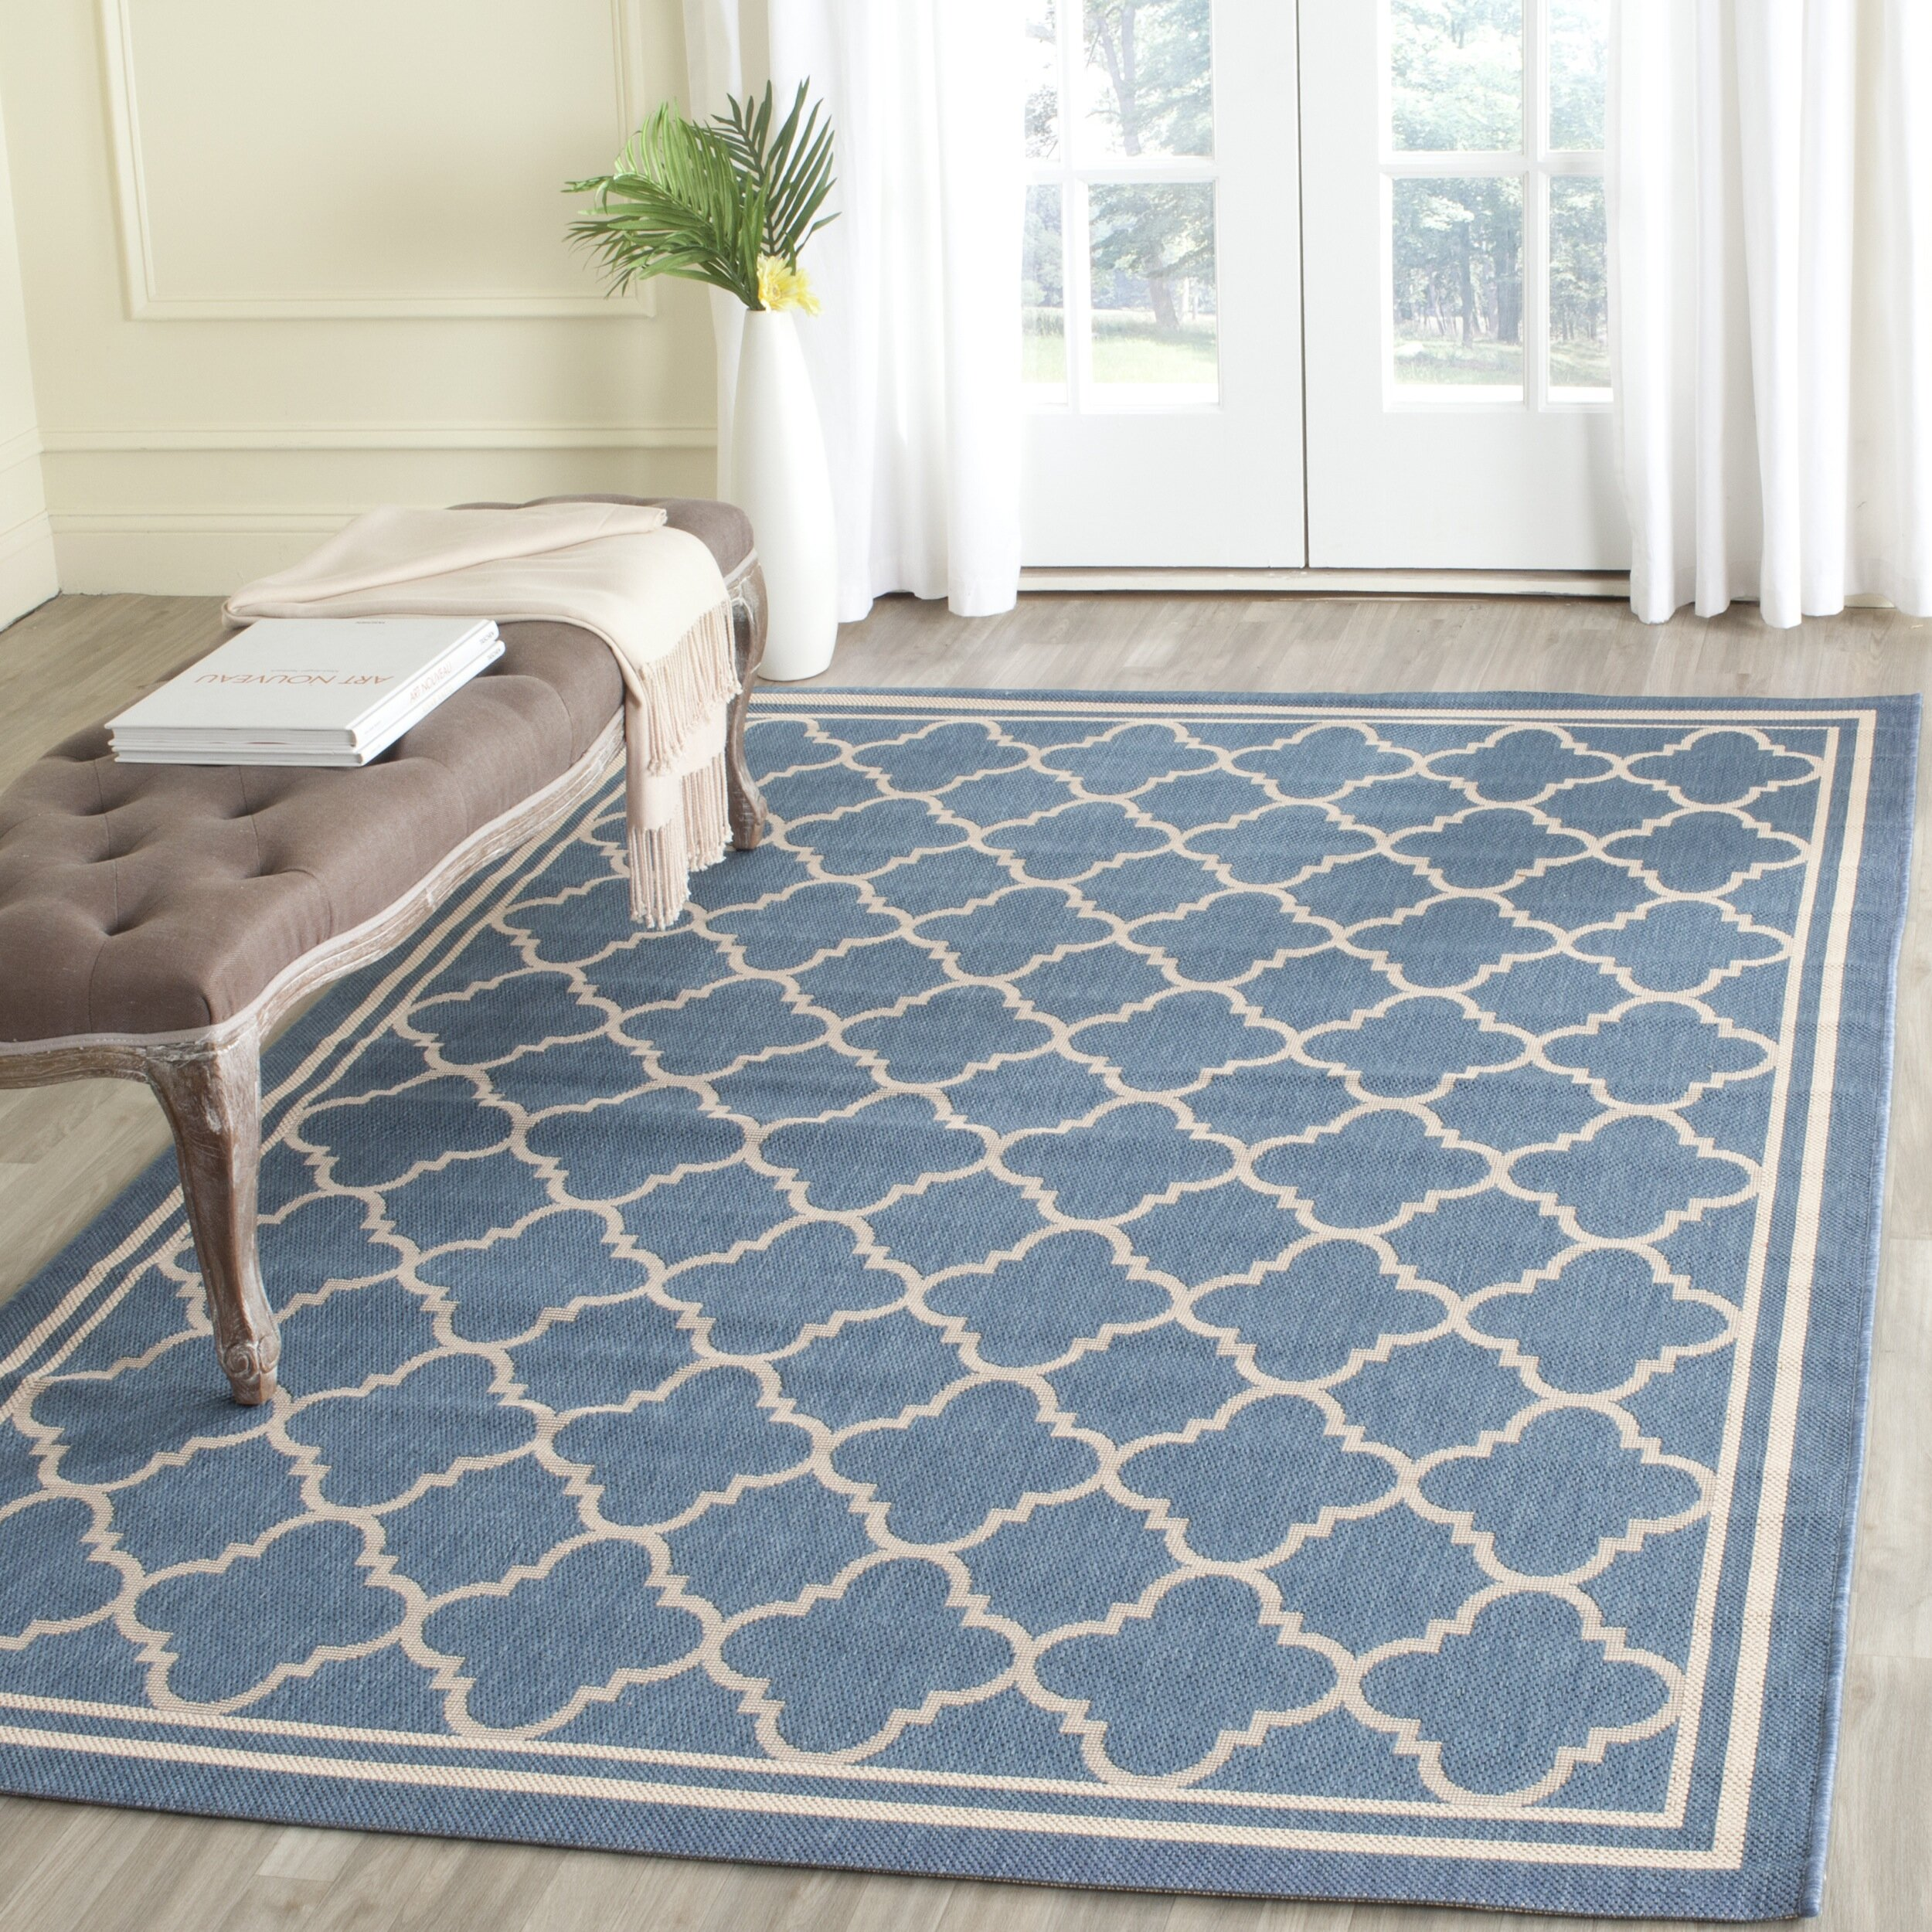 Blue Outdoor Rug 9x12: Navy Blue And Beige Area Rugs